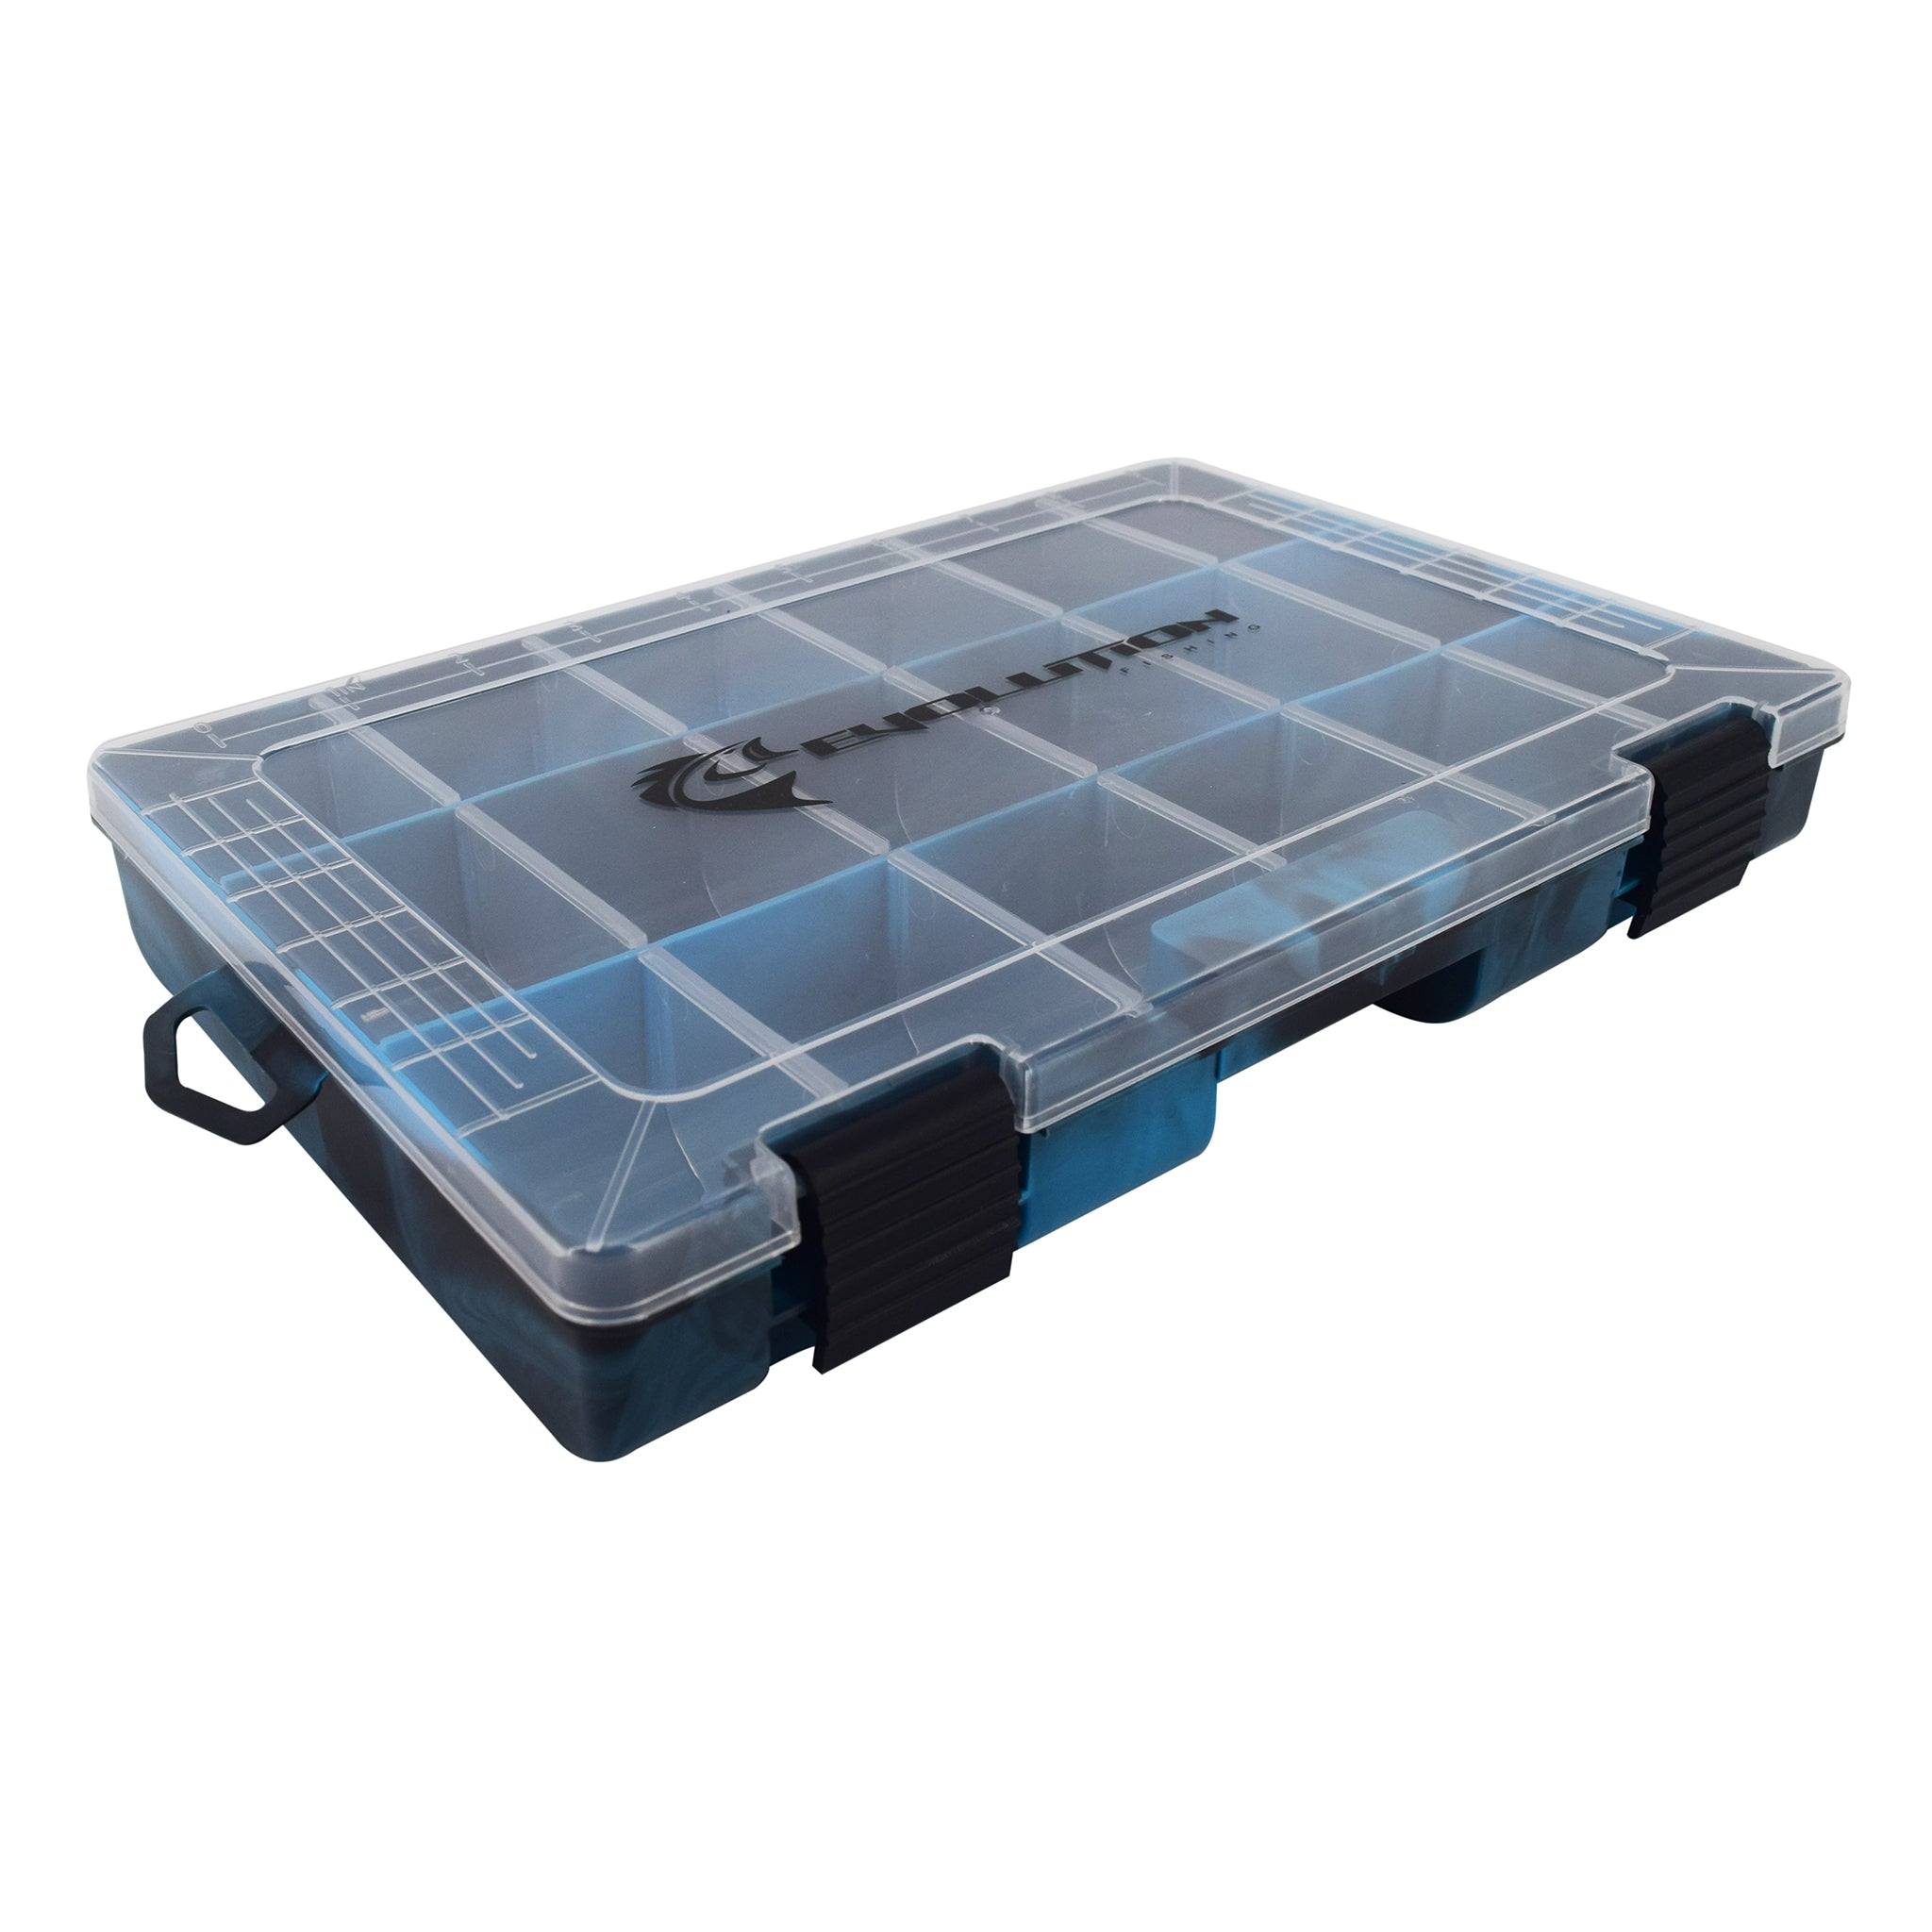 Drift Series 3600 Colored Tackle Tray - Multiple Colors Available